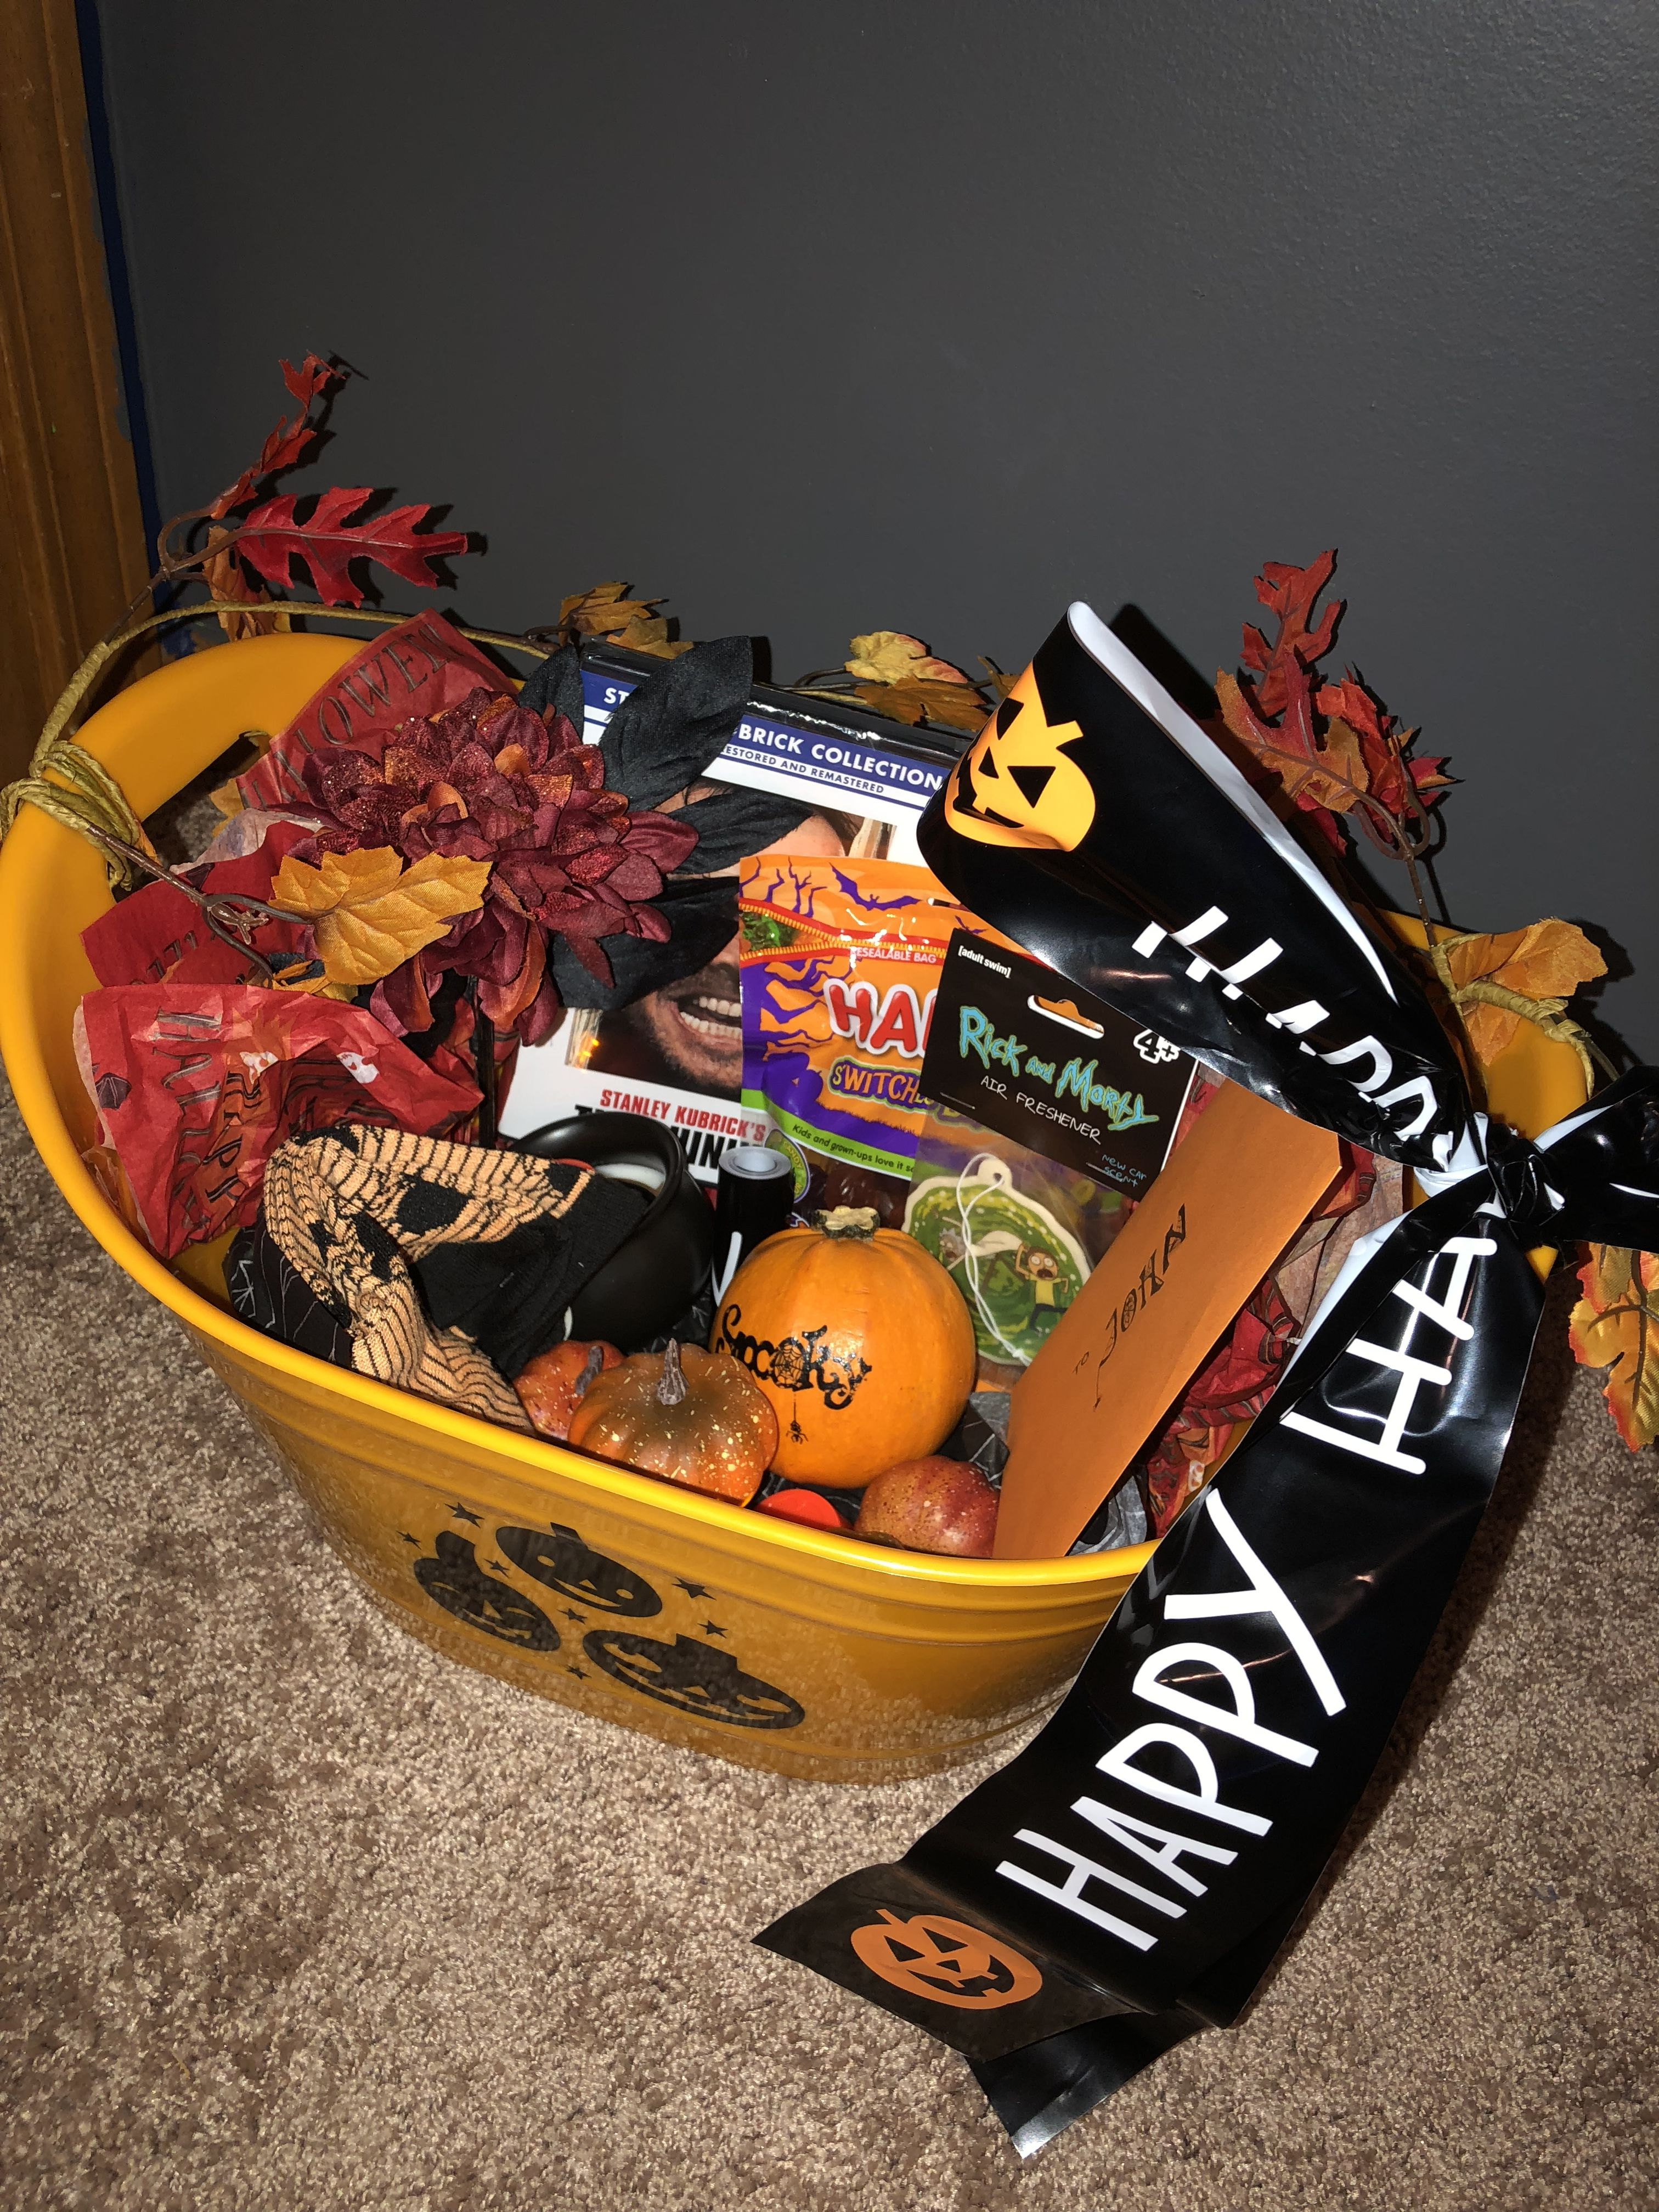 Halloween gift ideas for adults